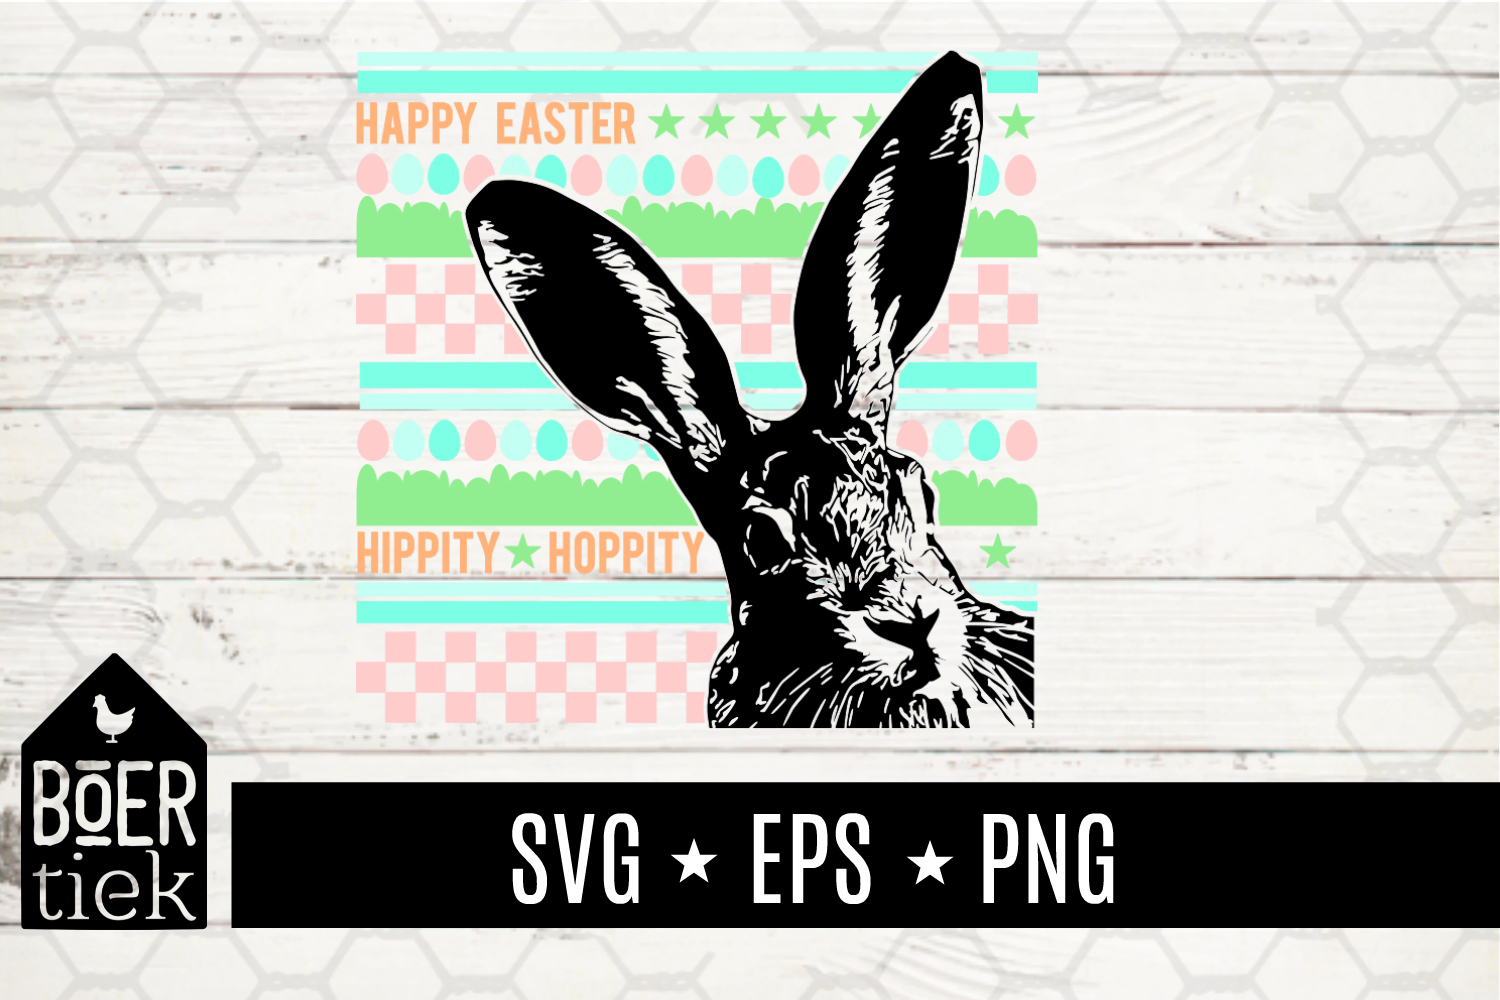 Download Free Happy Easter Bunny Graphic By Boertiek Creative Fabrica for Cricut Explore, Silhouette and other cutting machines.